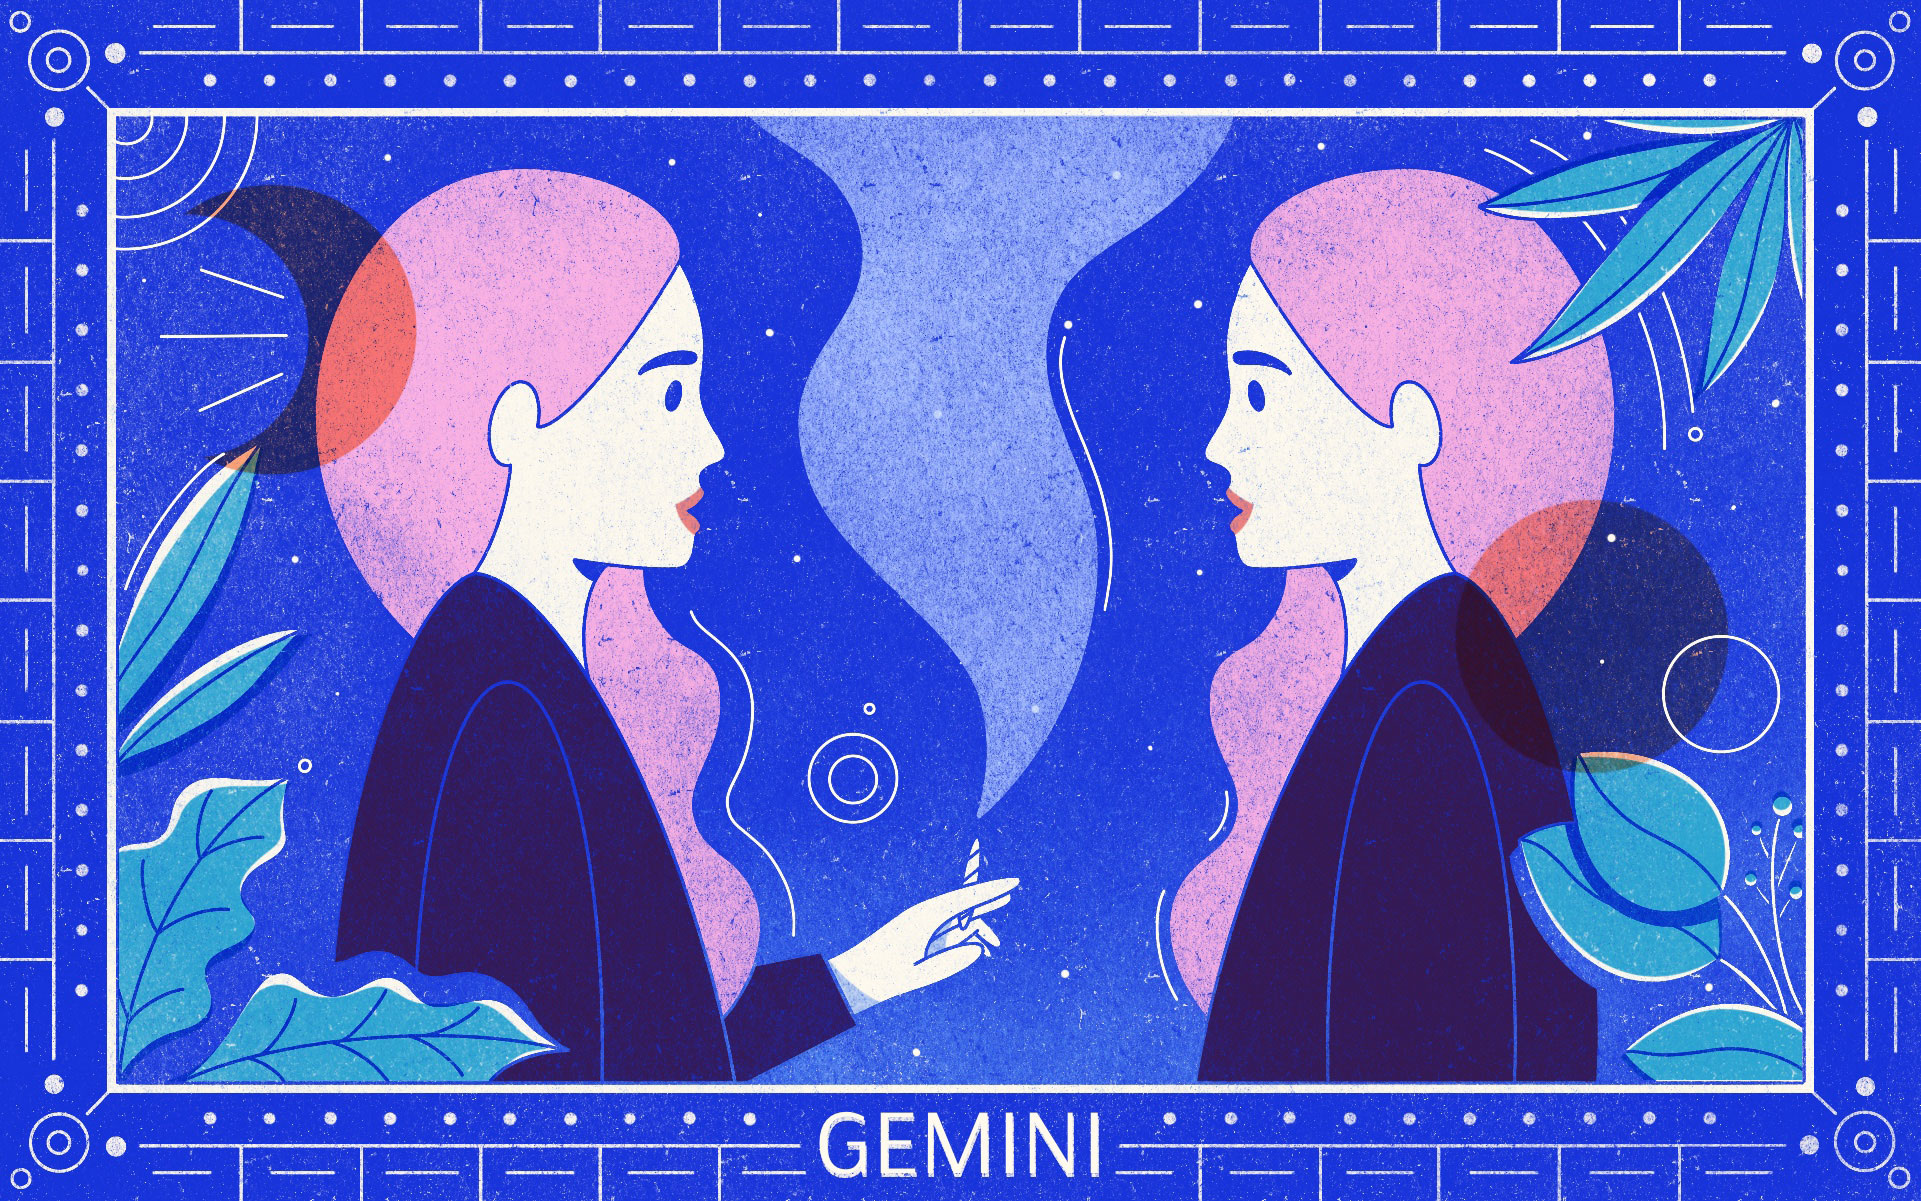 GEMINI web Gillian Levine - Star signs and cannabis strains: July 2020 horoscopes